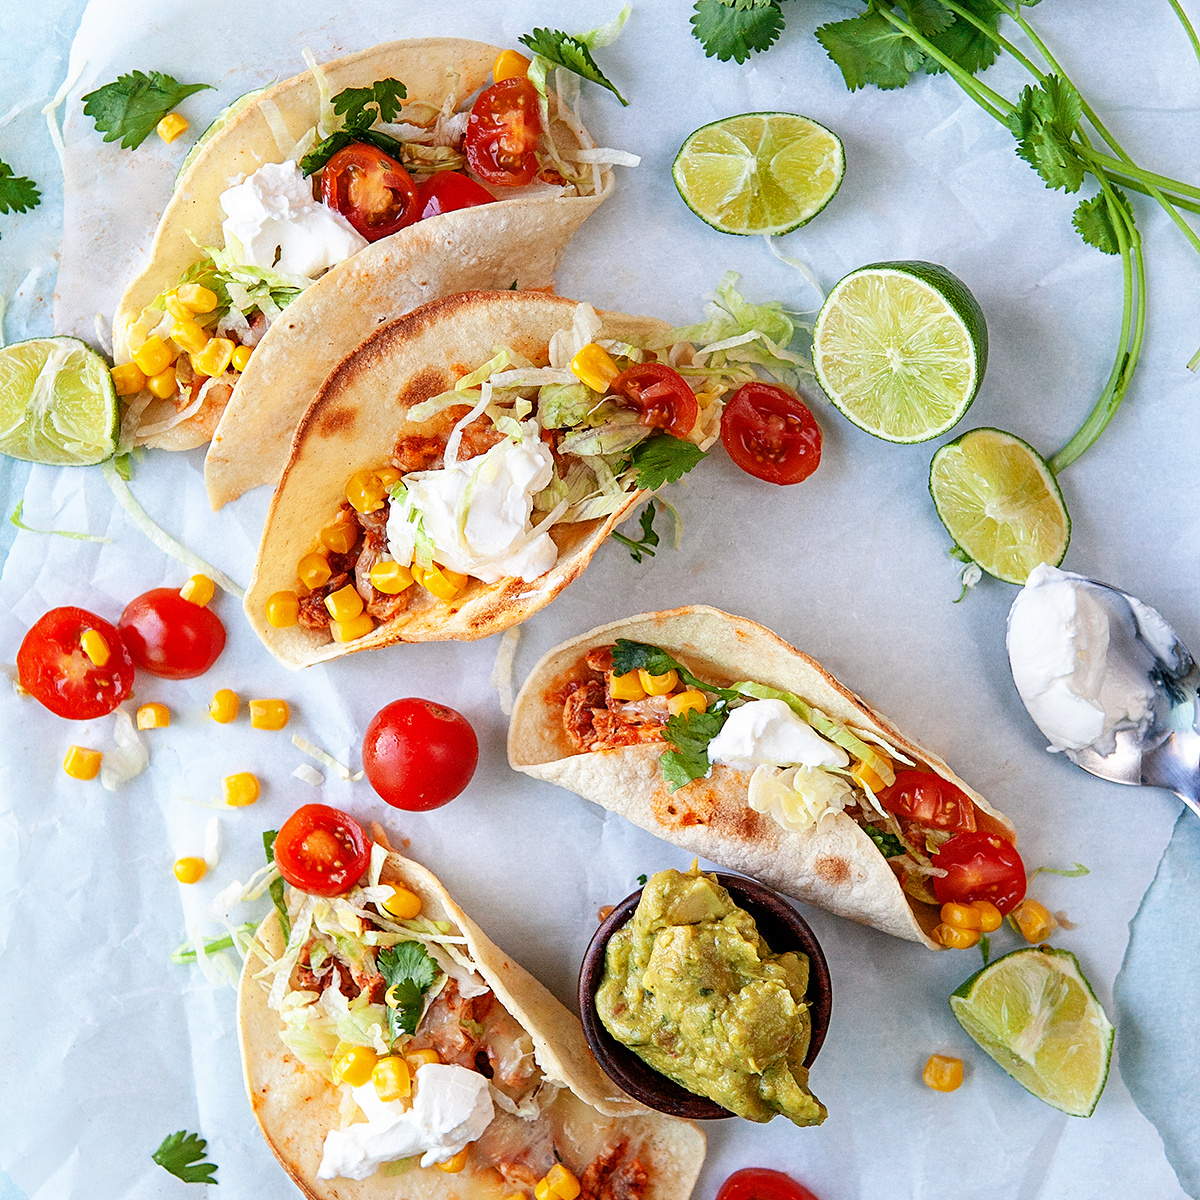 Overhead shot of tacos and toppings on parchment paper